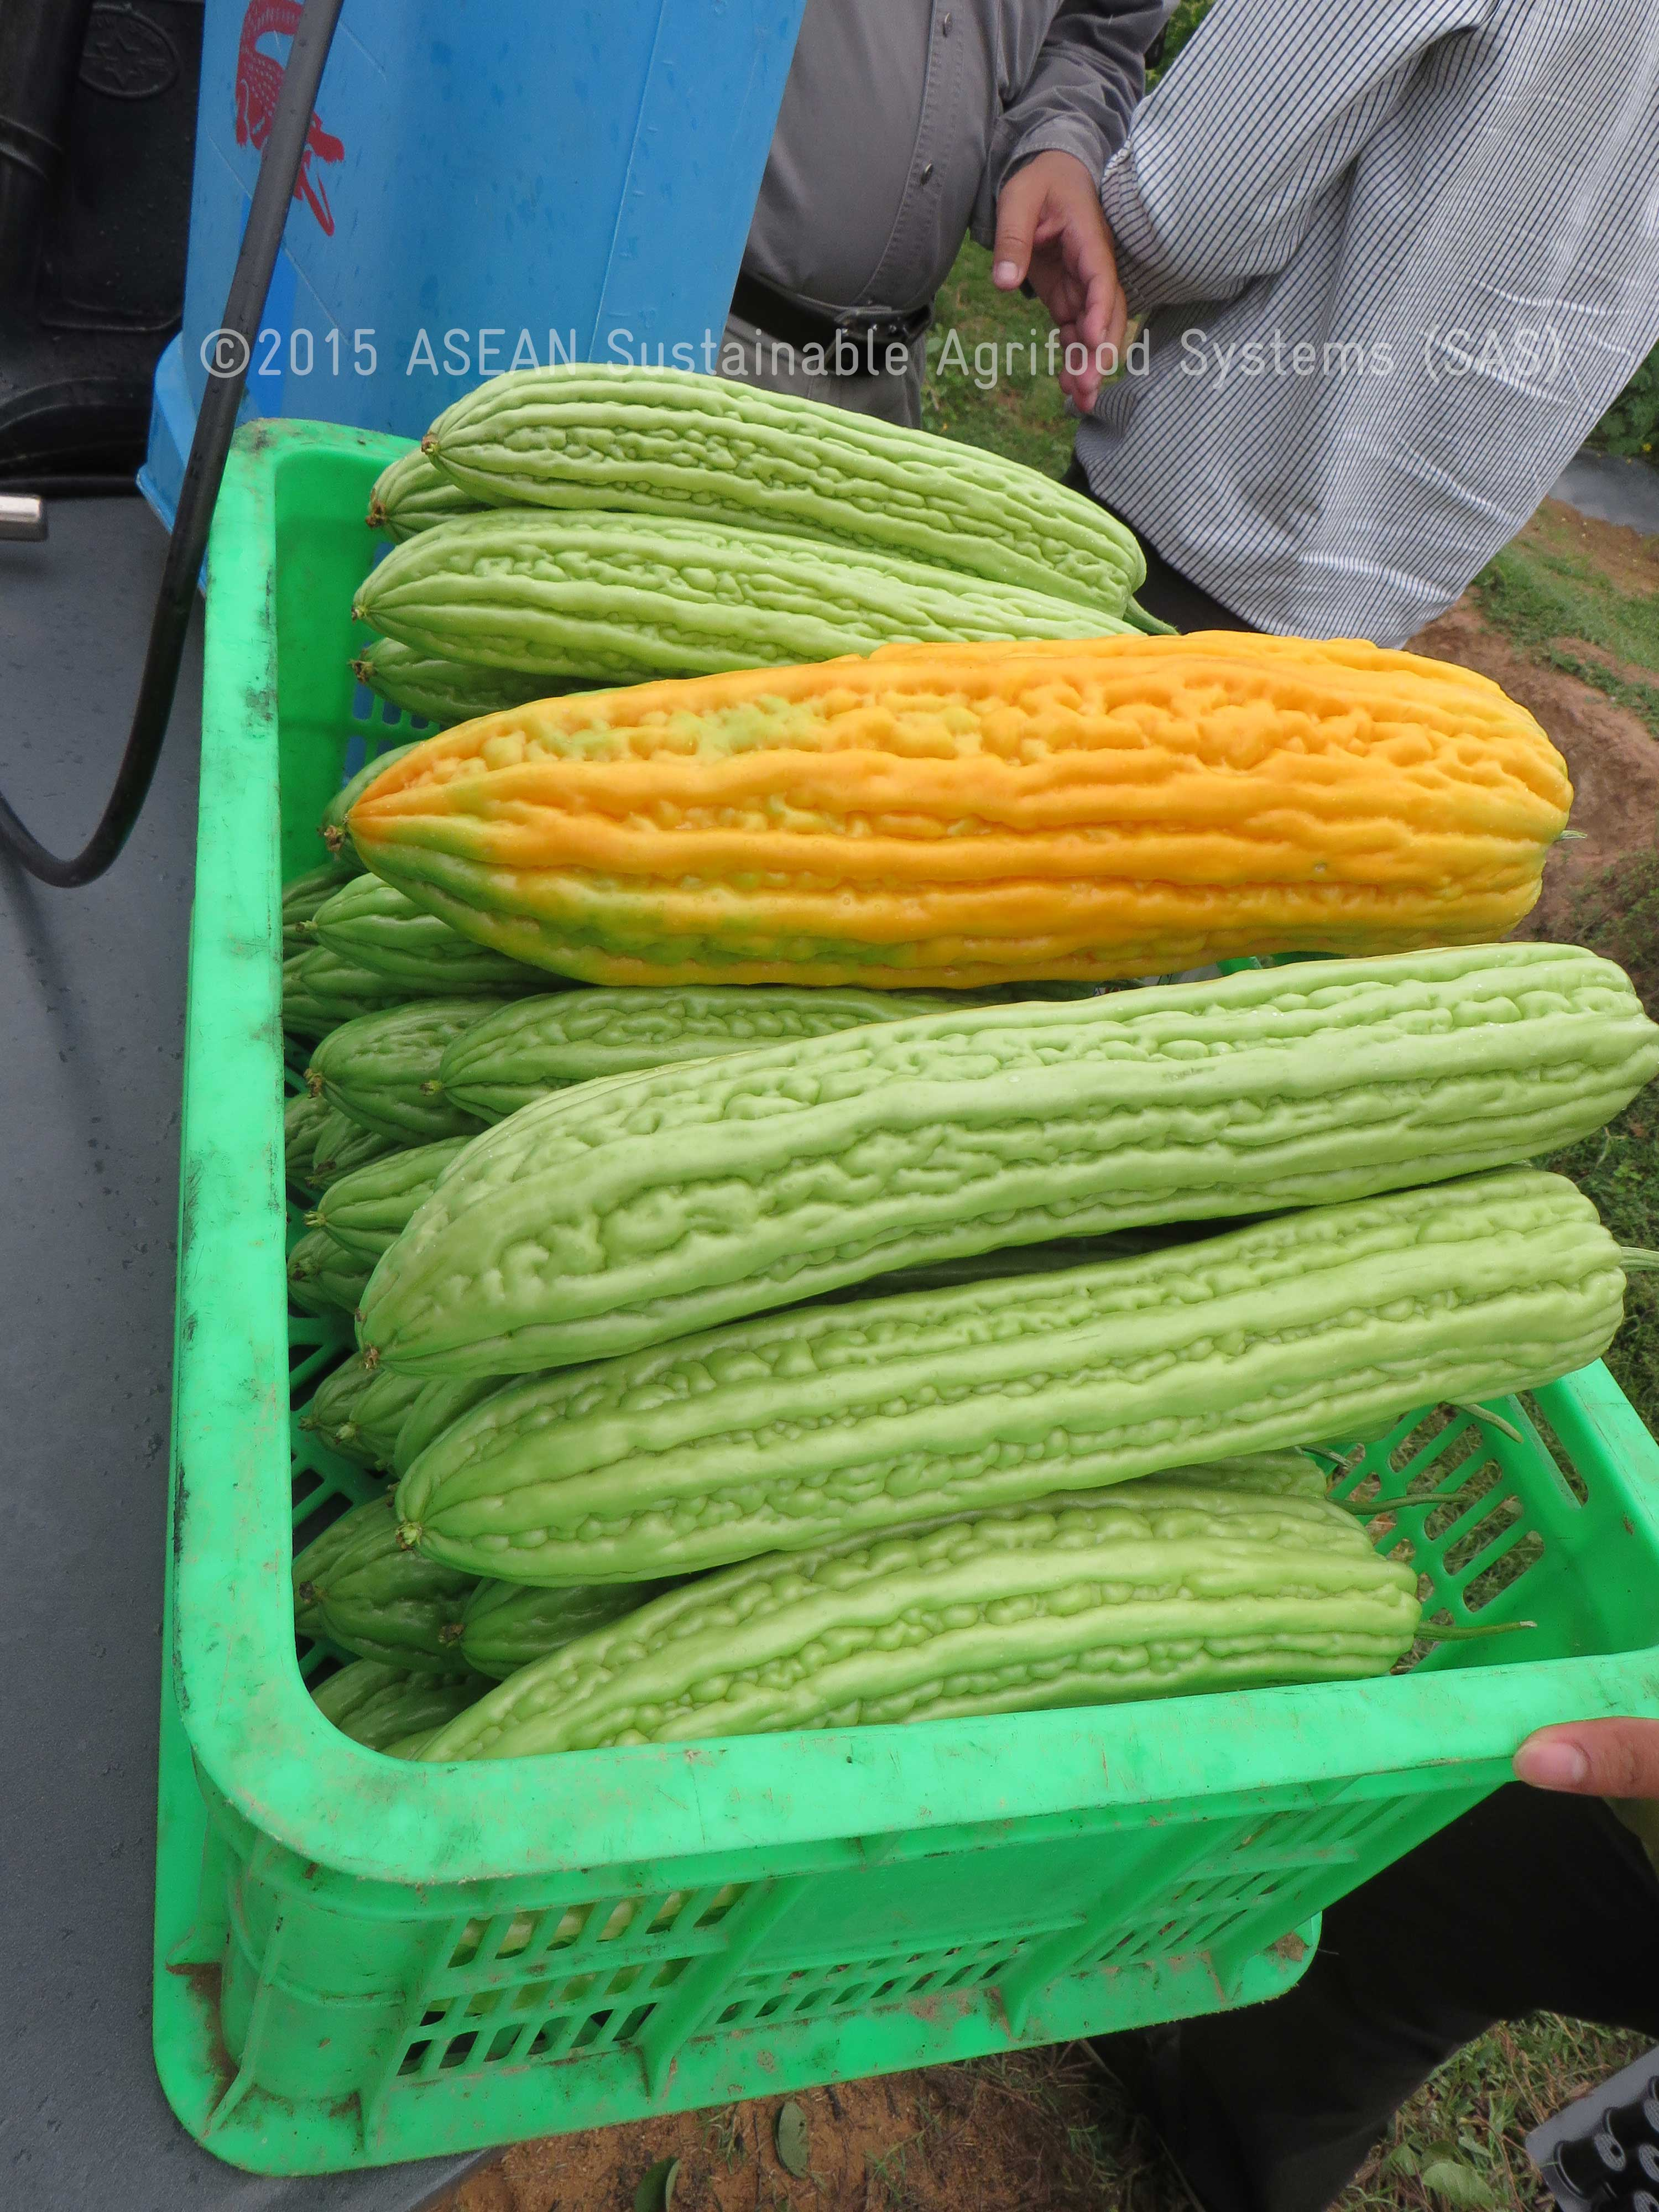 bitter gourd production Bitter gourd karela production technology: climate: bitter guard is sub-tropical vegetable and requires hot and dry climate conditions for successful cultivation crop can be grown even in place of slightly lower temperature and high rain fall areas.